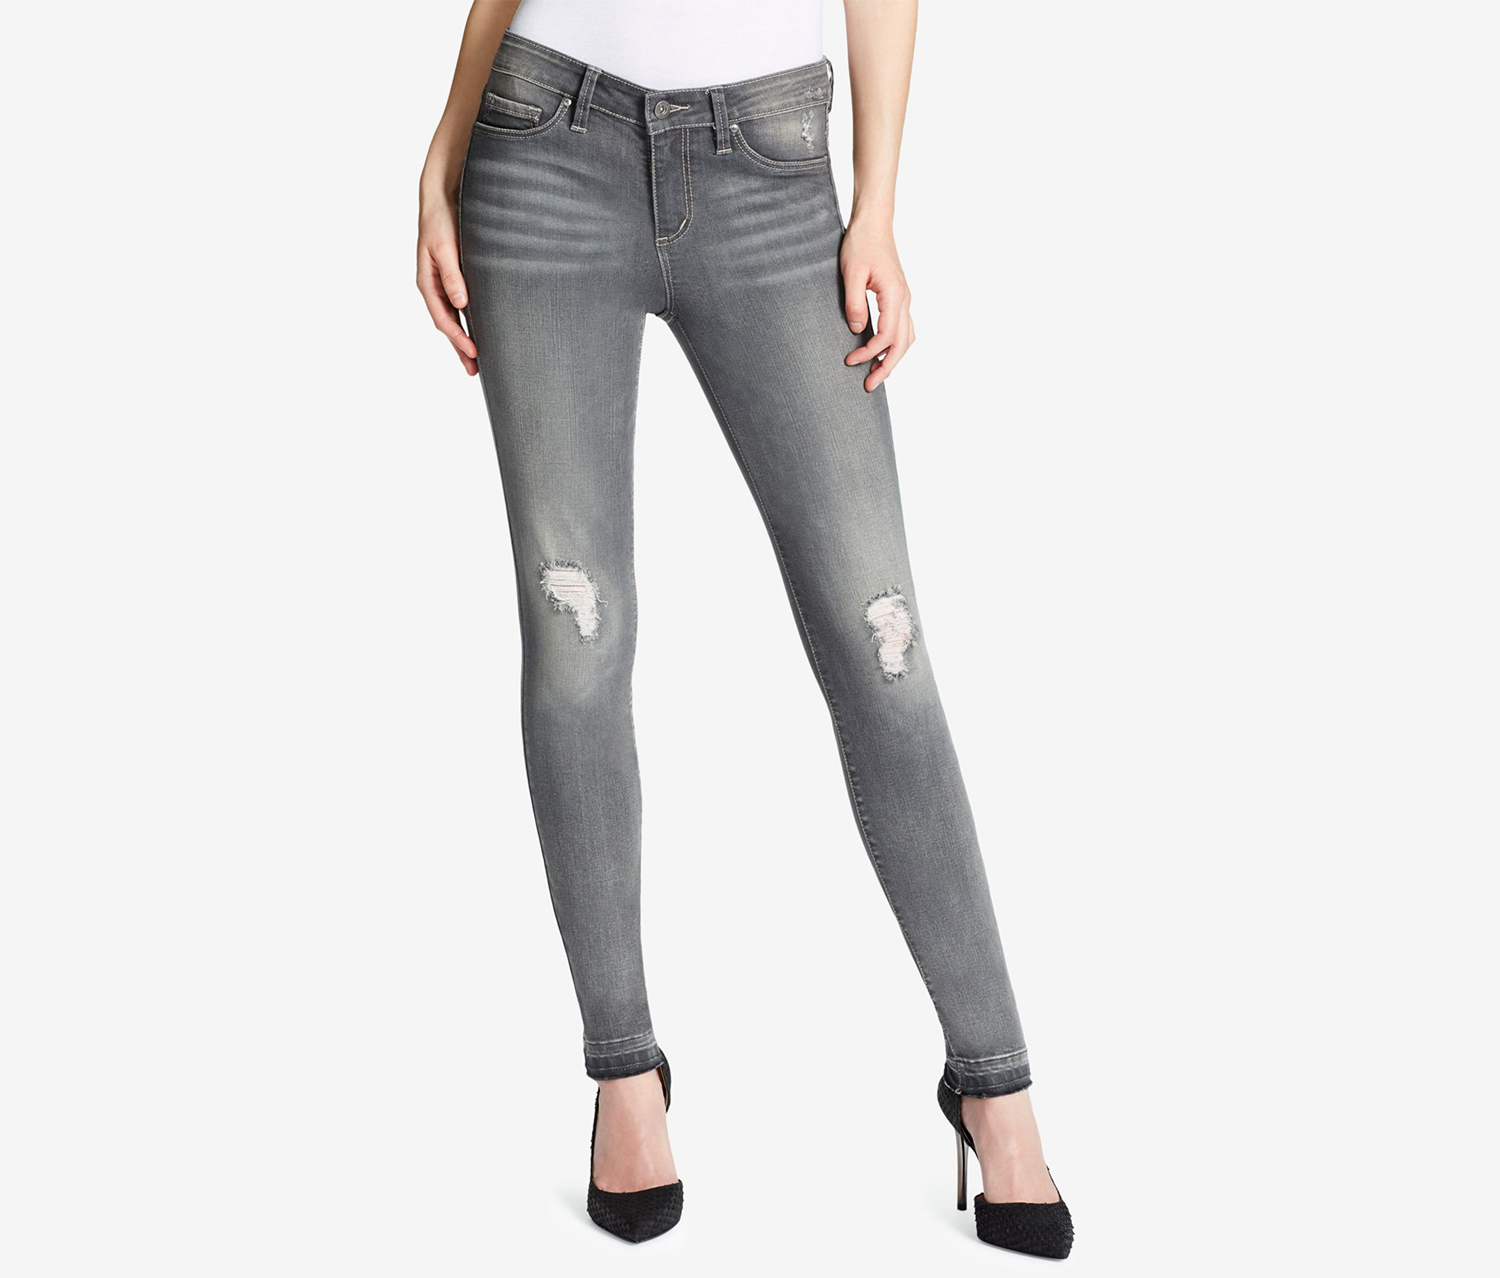 Women's Kiss Me Destructed Skinny Jeans, Gray